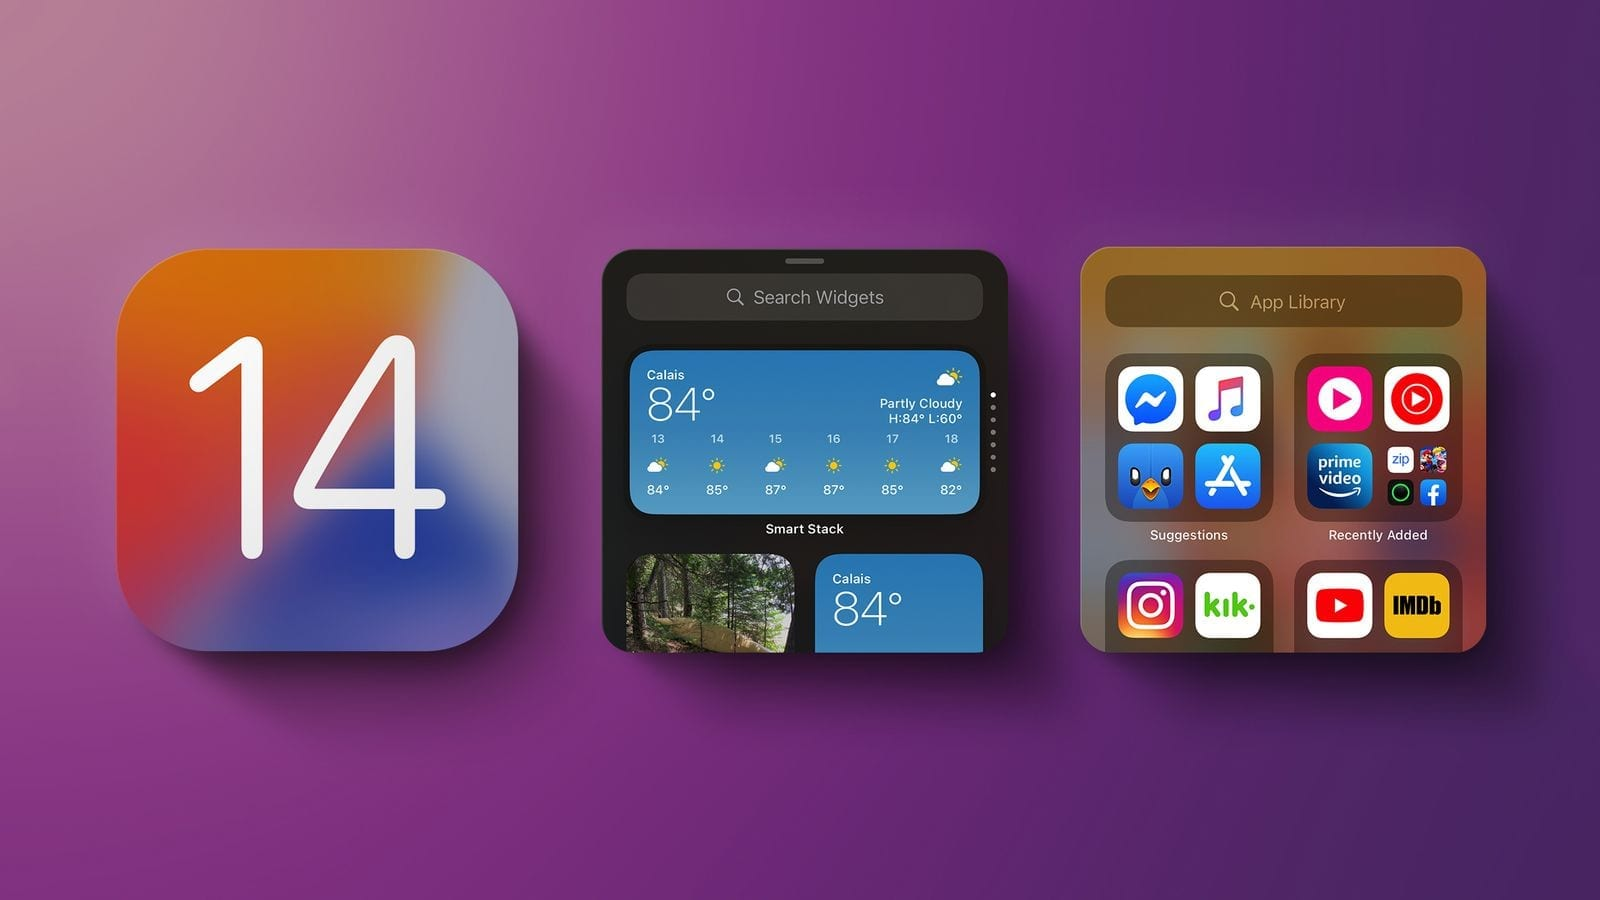 With Ios 14 Home Screen Widgets Pinterest Notices Record Downloads Armenian American Reporter